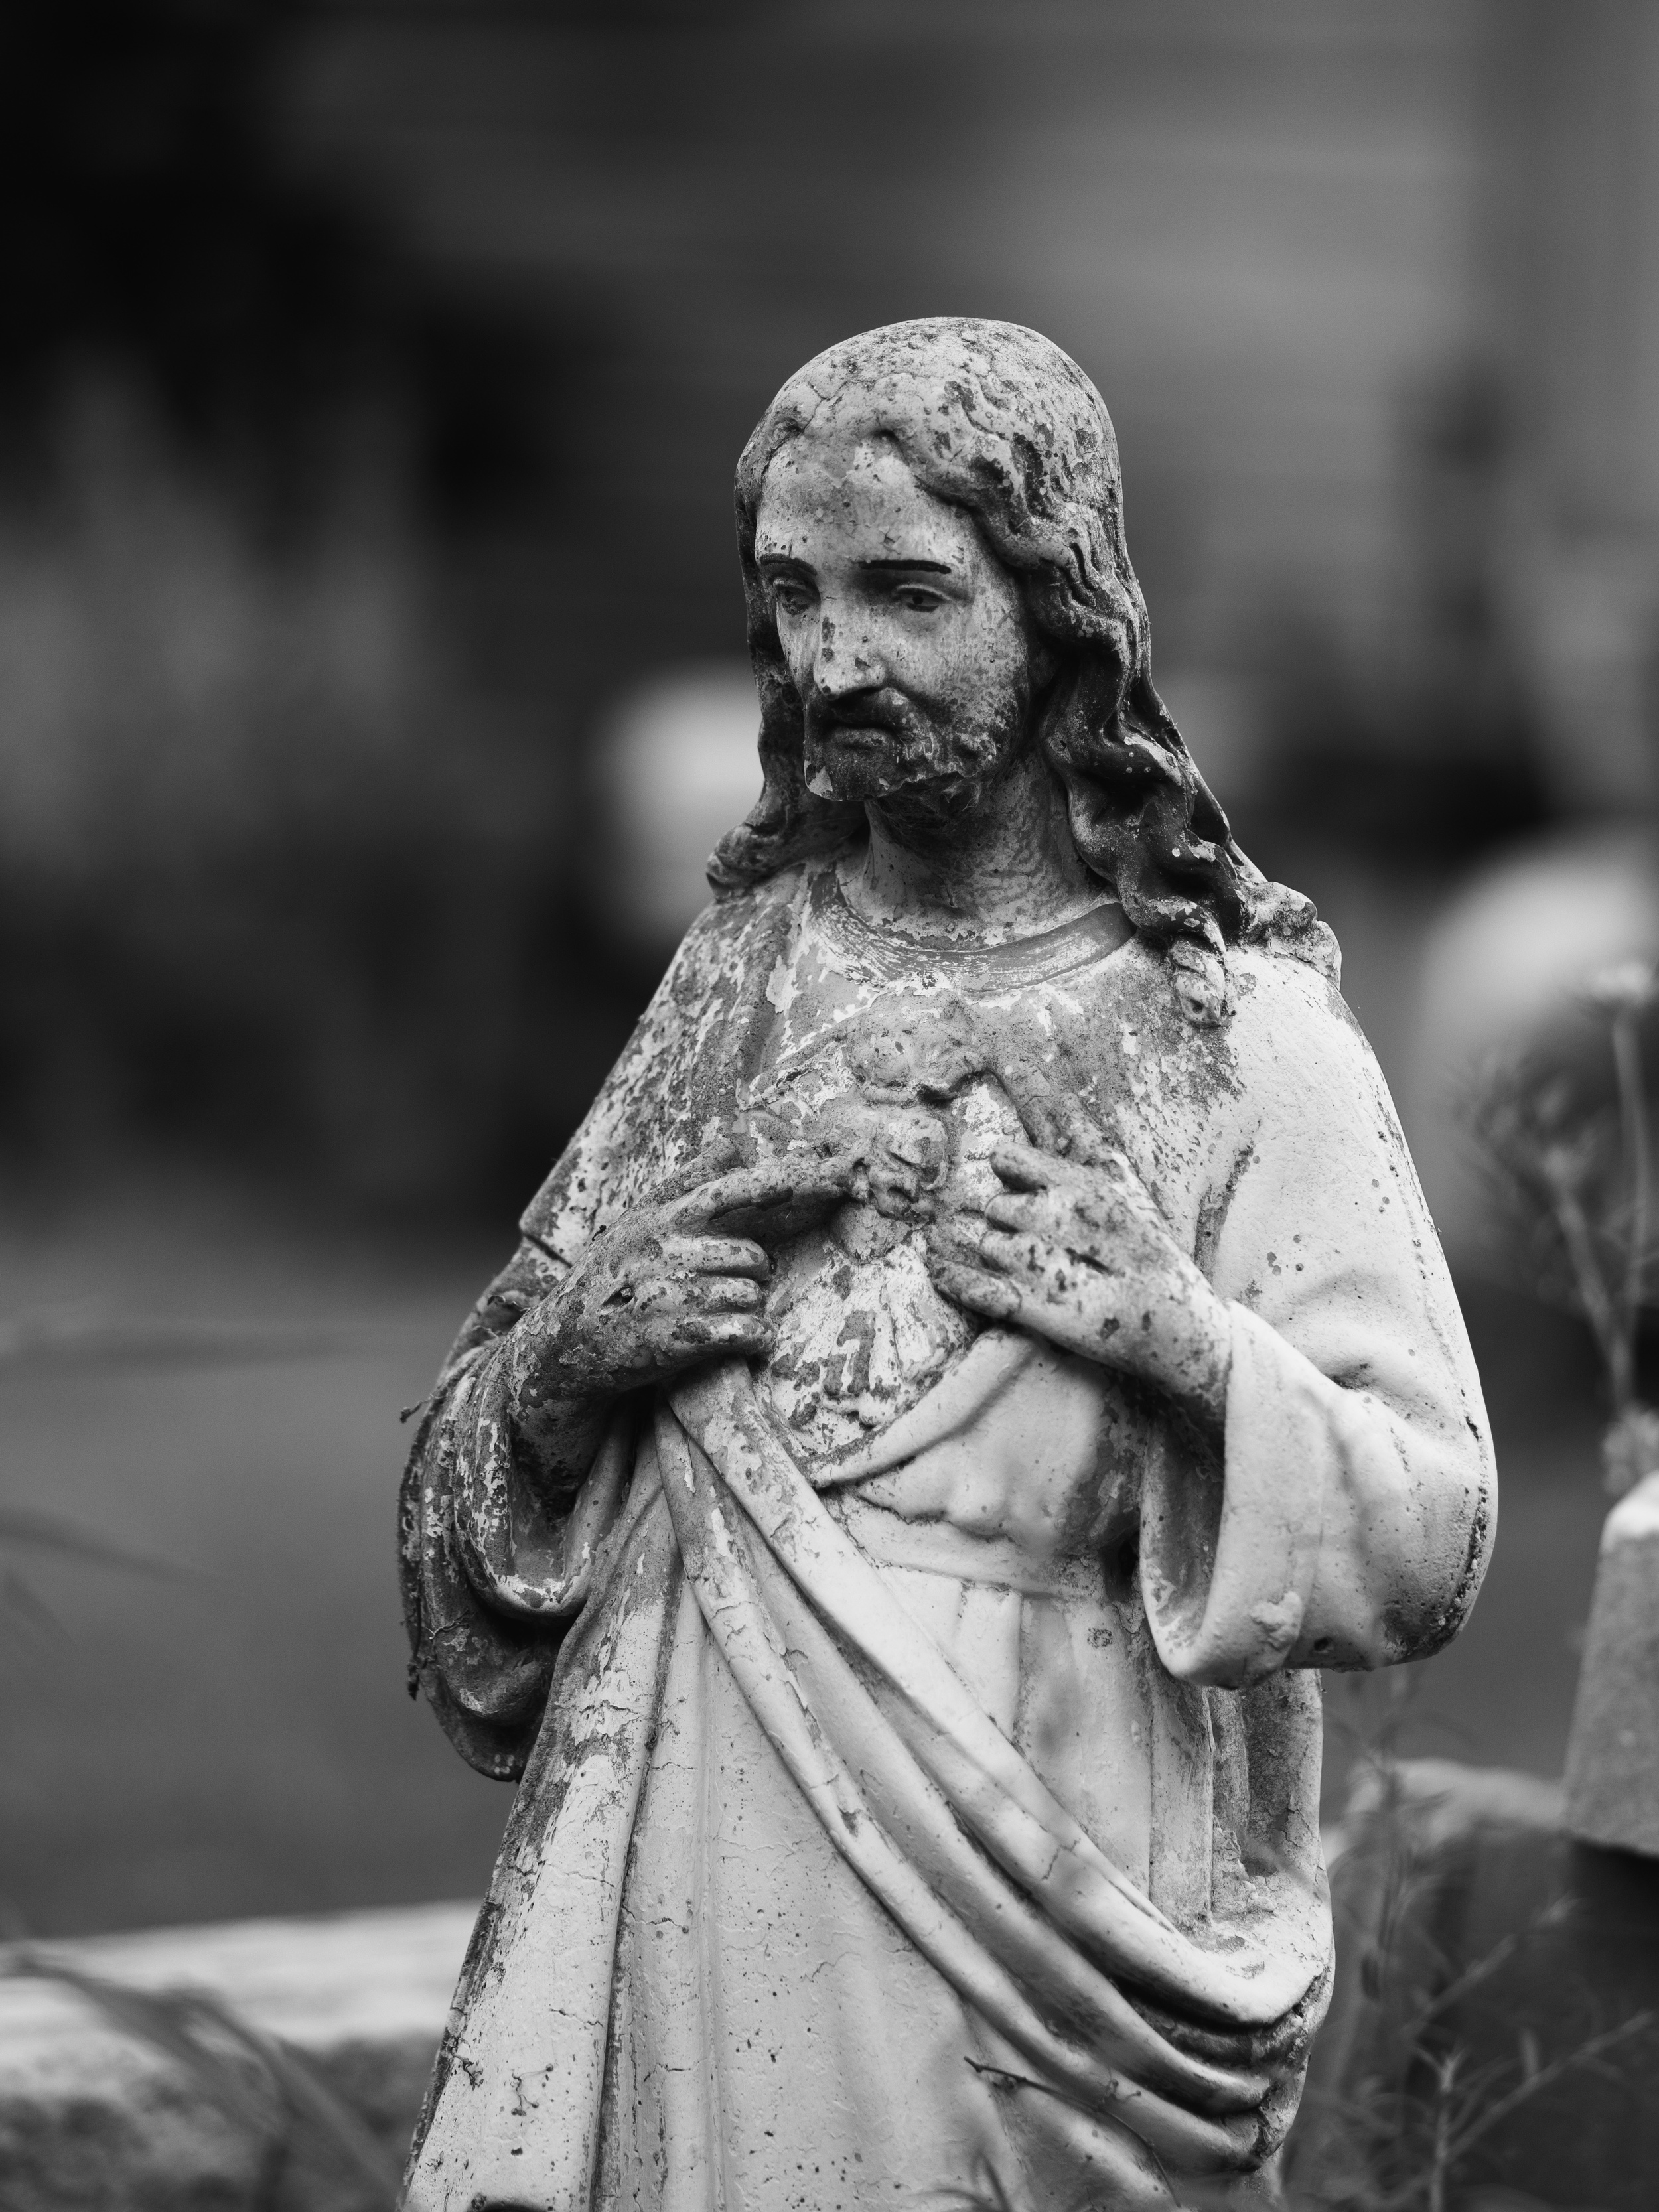 I love shooting cemetery statuary in B&W :)